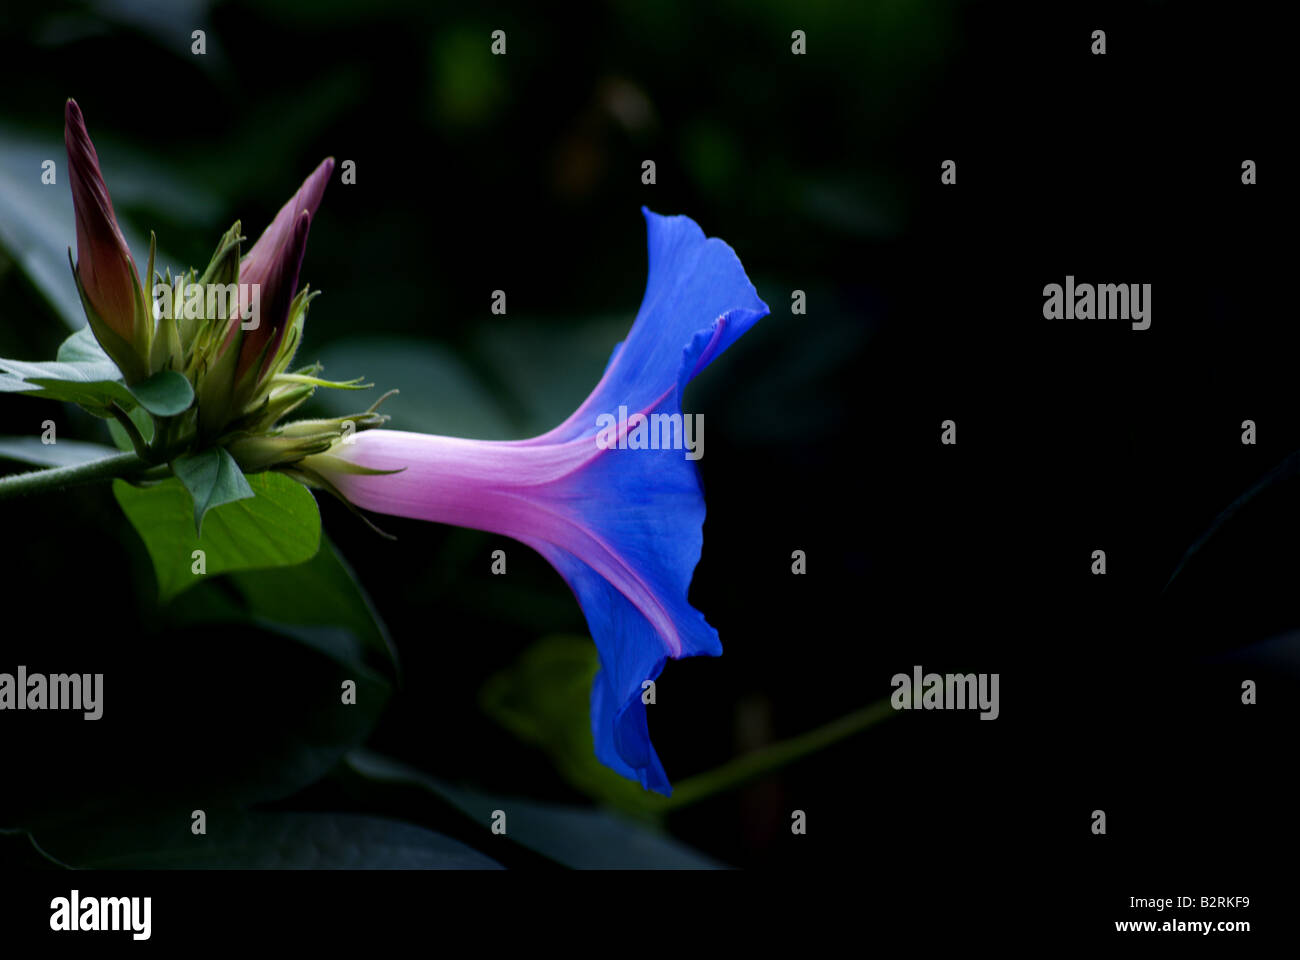 Single blossom of a heavenly blue morning glory on a near black background. - Stock Image